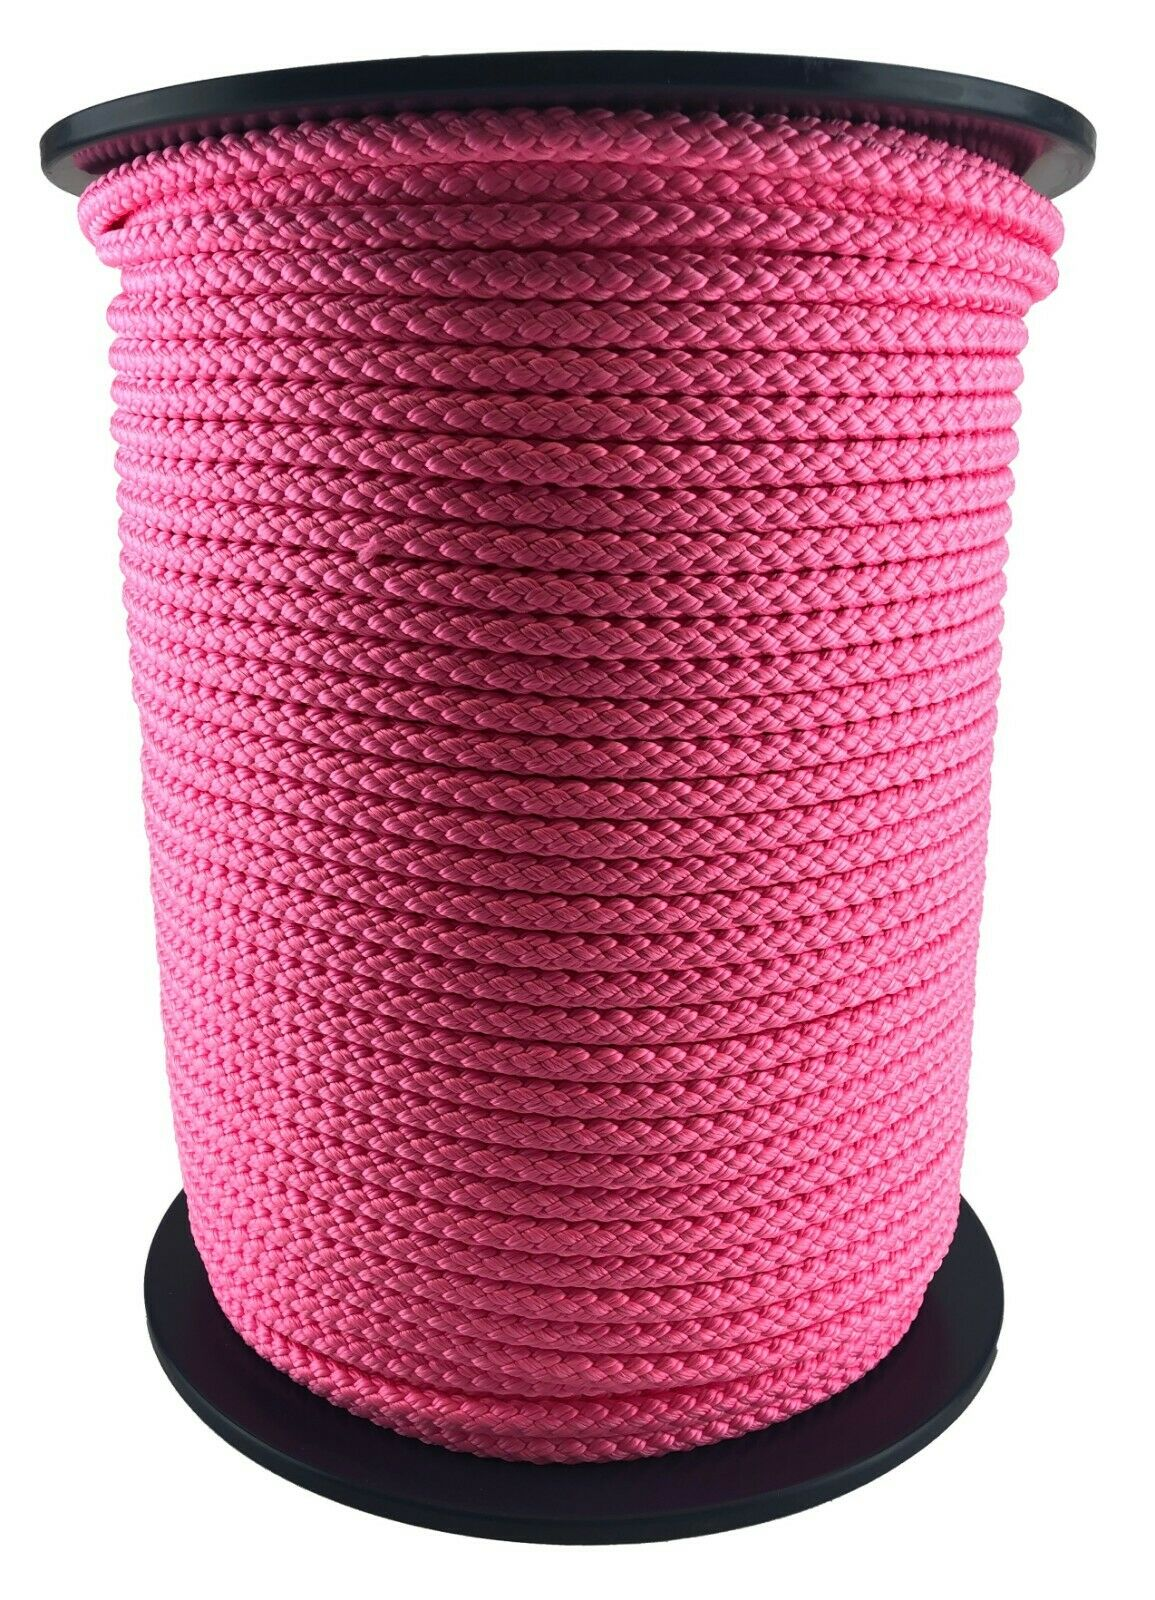 10mm Pink Braided Polypropylene Rope x 50 Metres Poly Line Sailing Boating